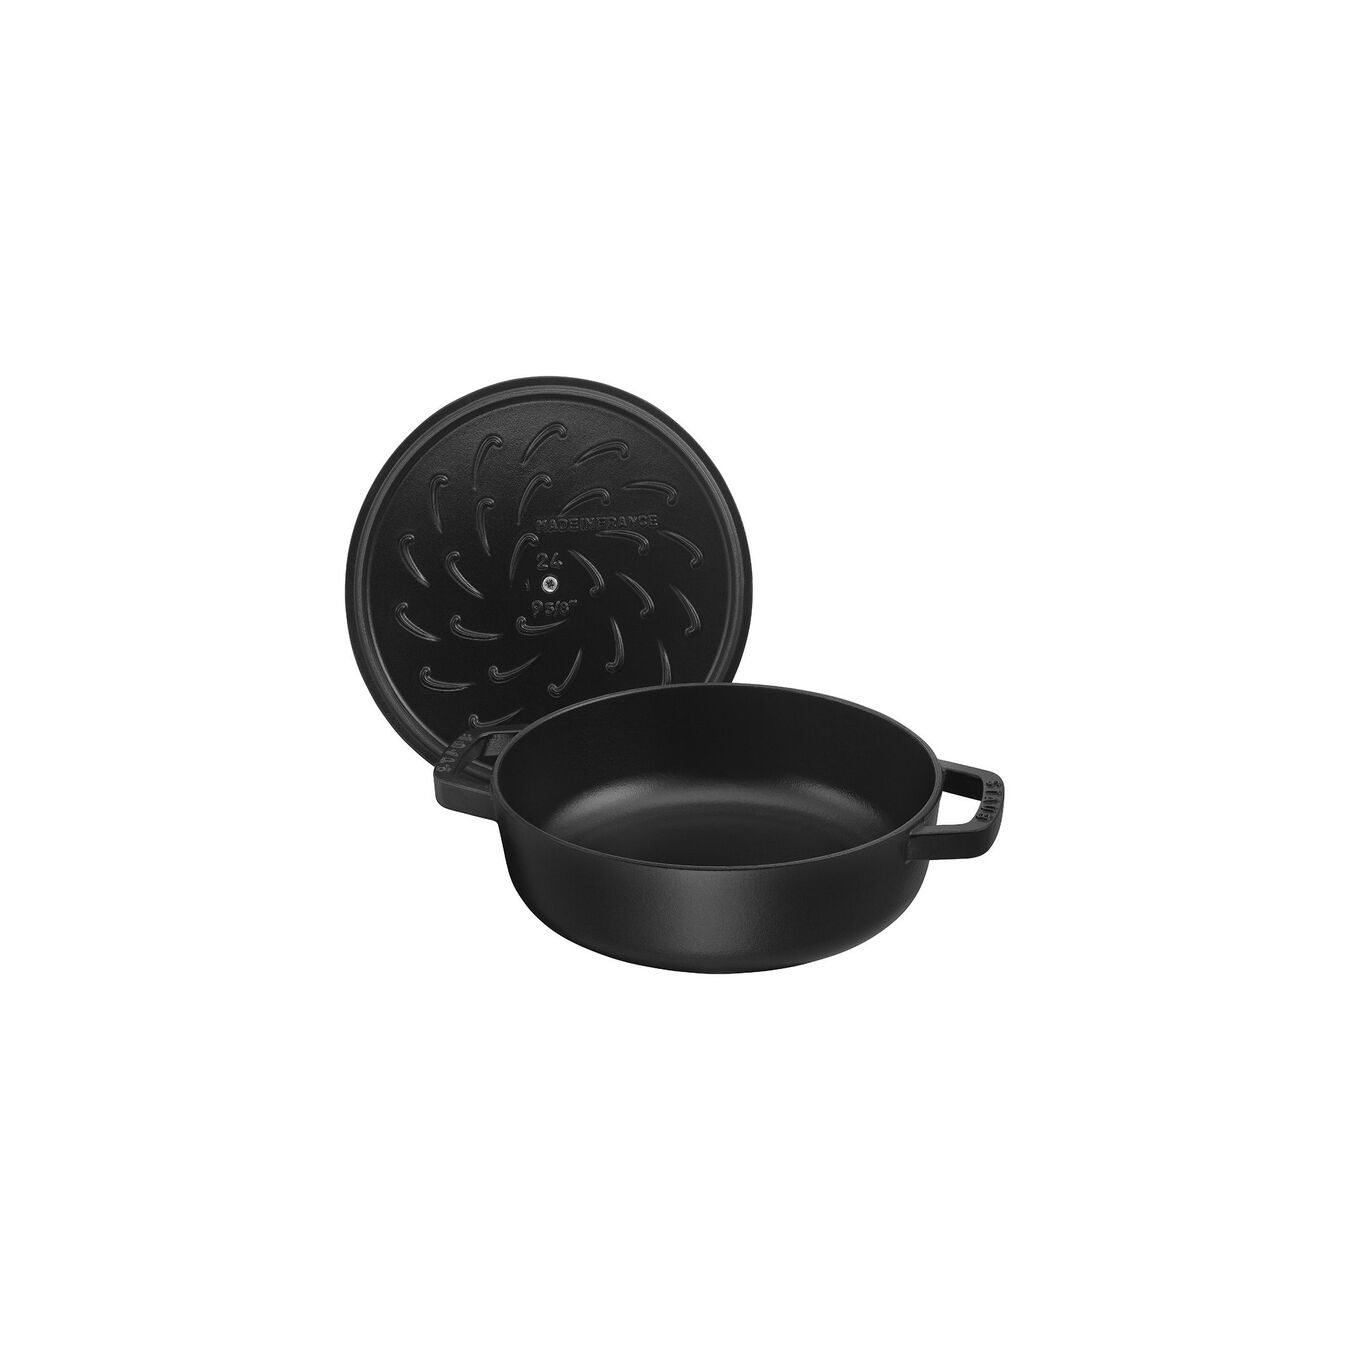 3.75 l Cast iron round Saute pan Chistera, Black,,large 2